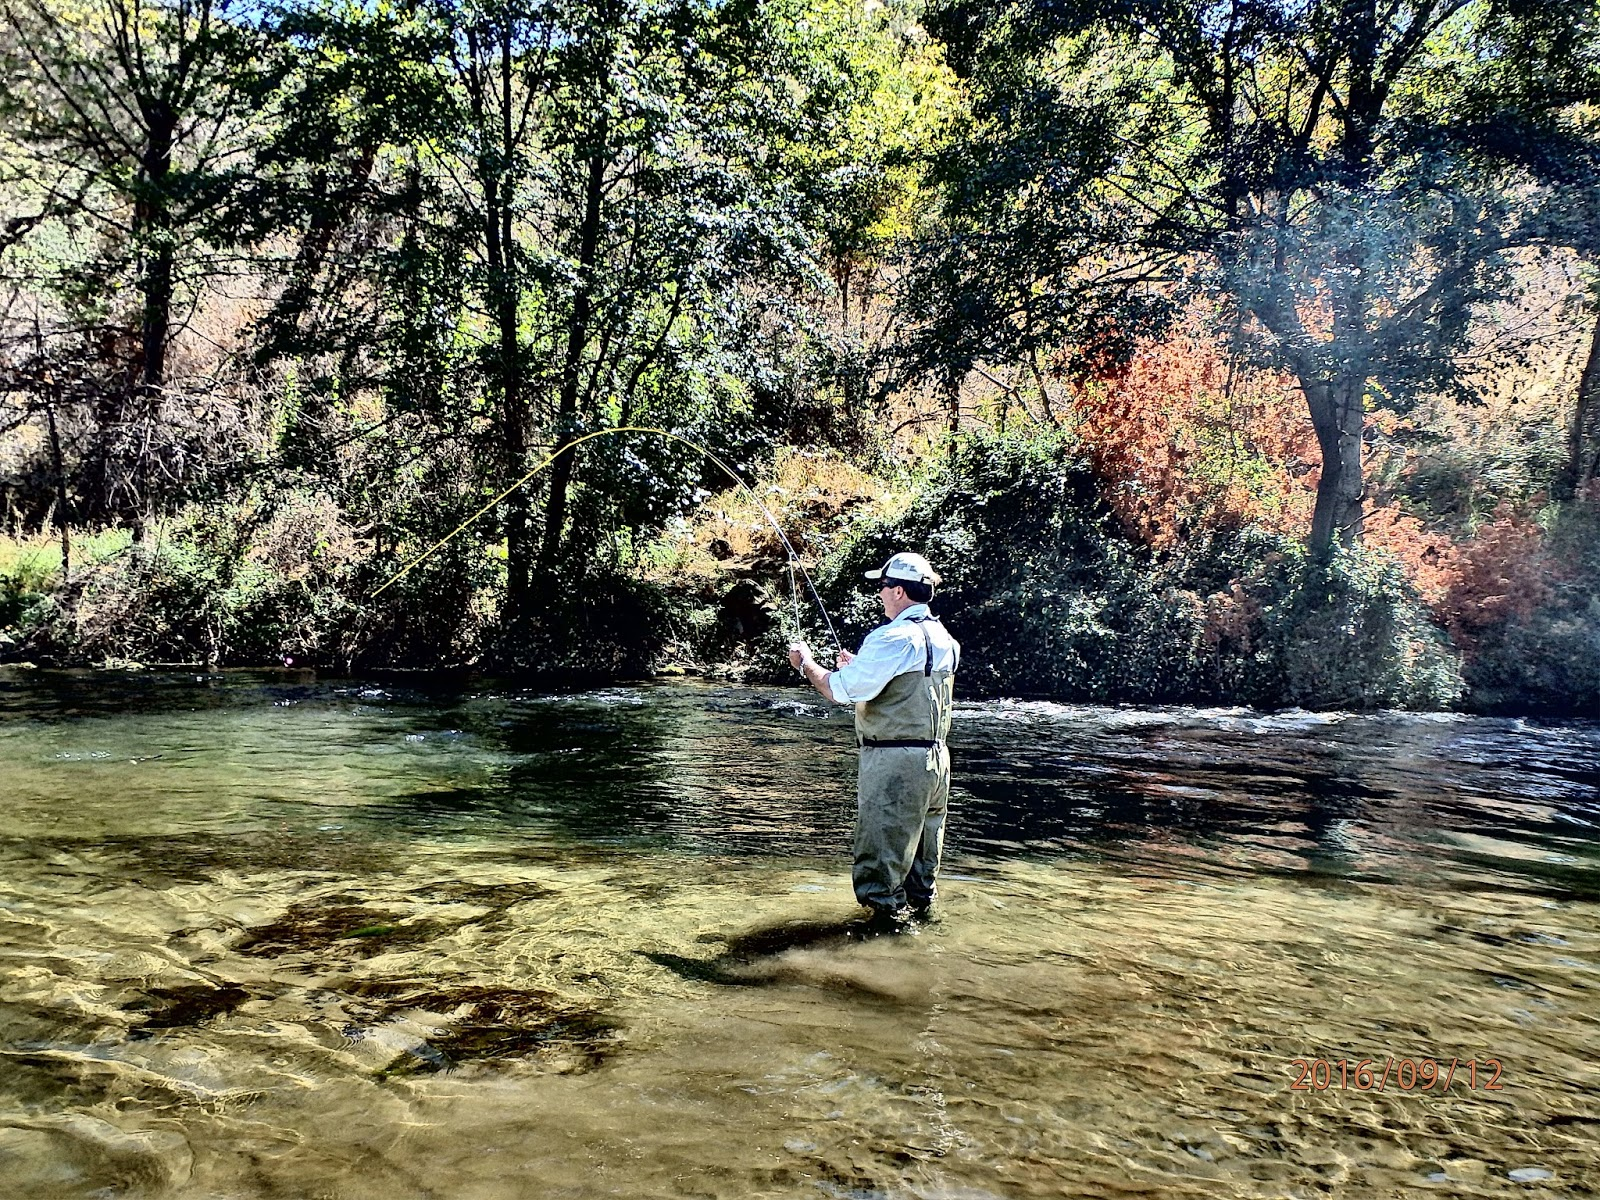 Napa valley fly fishing guide richard loft for Napa river fishing